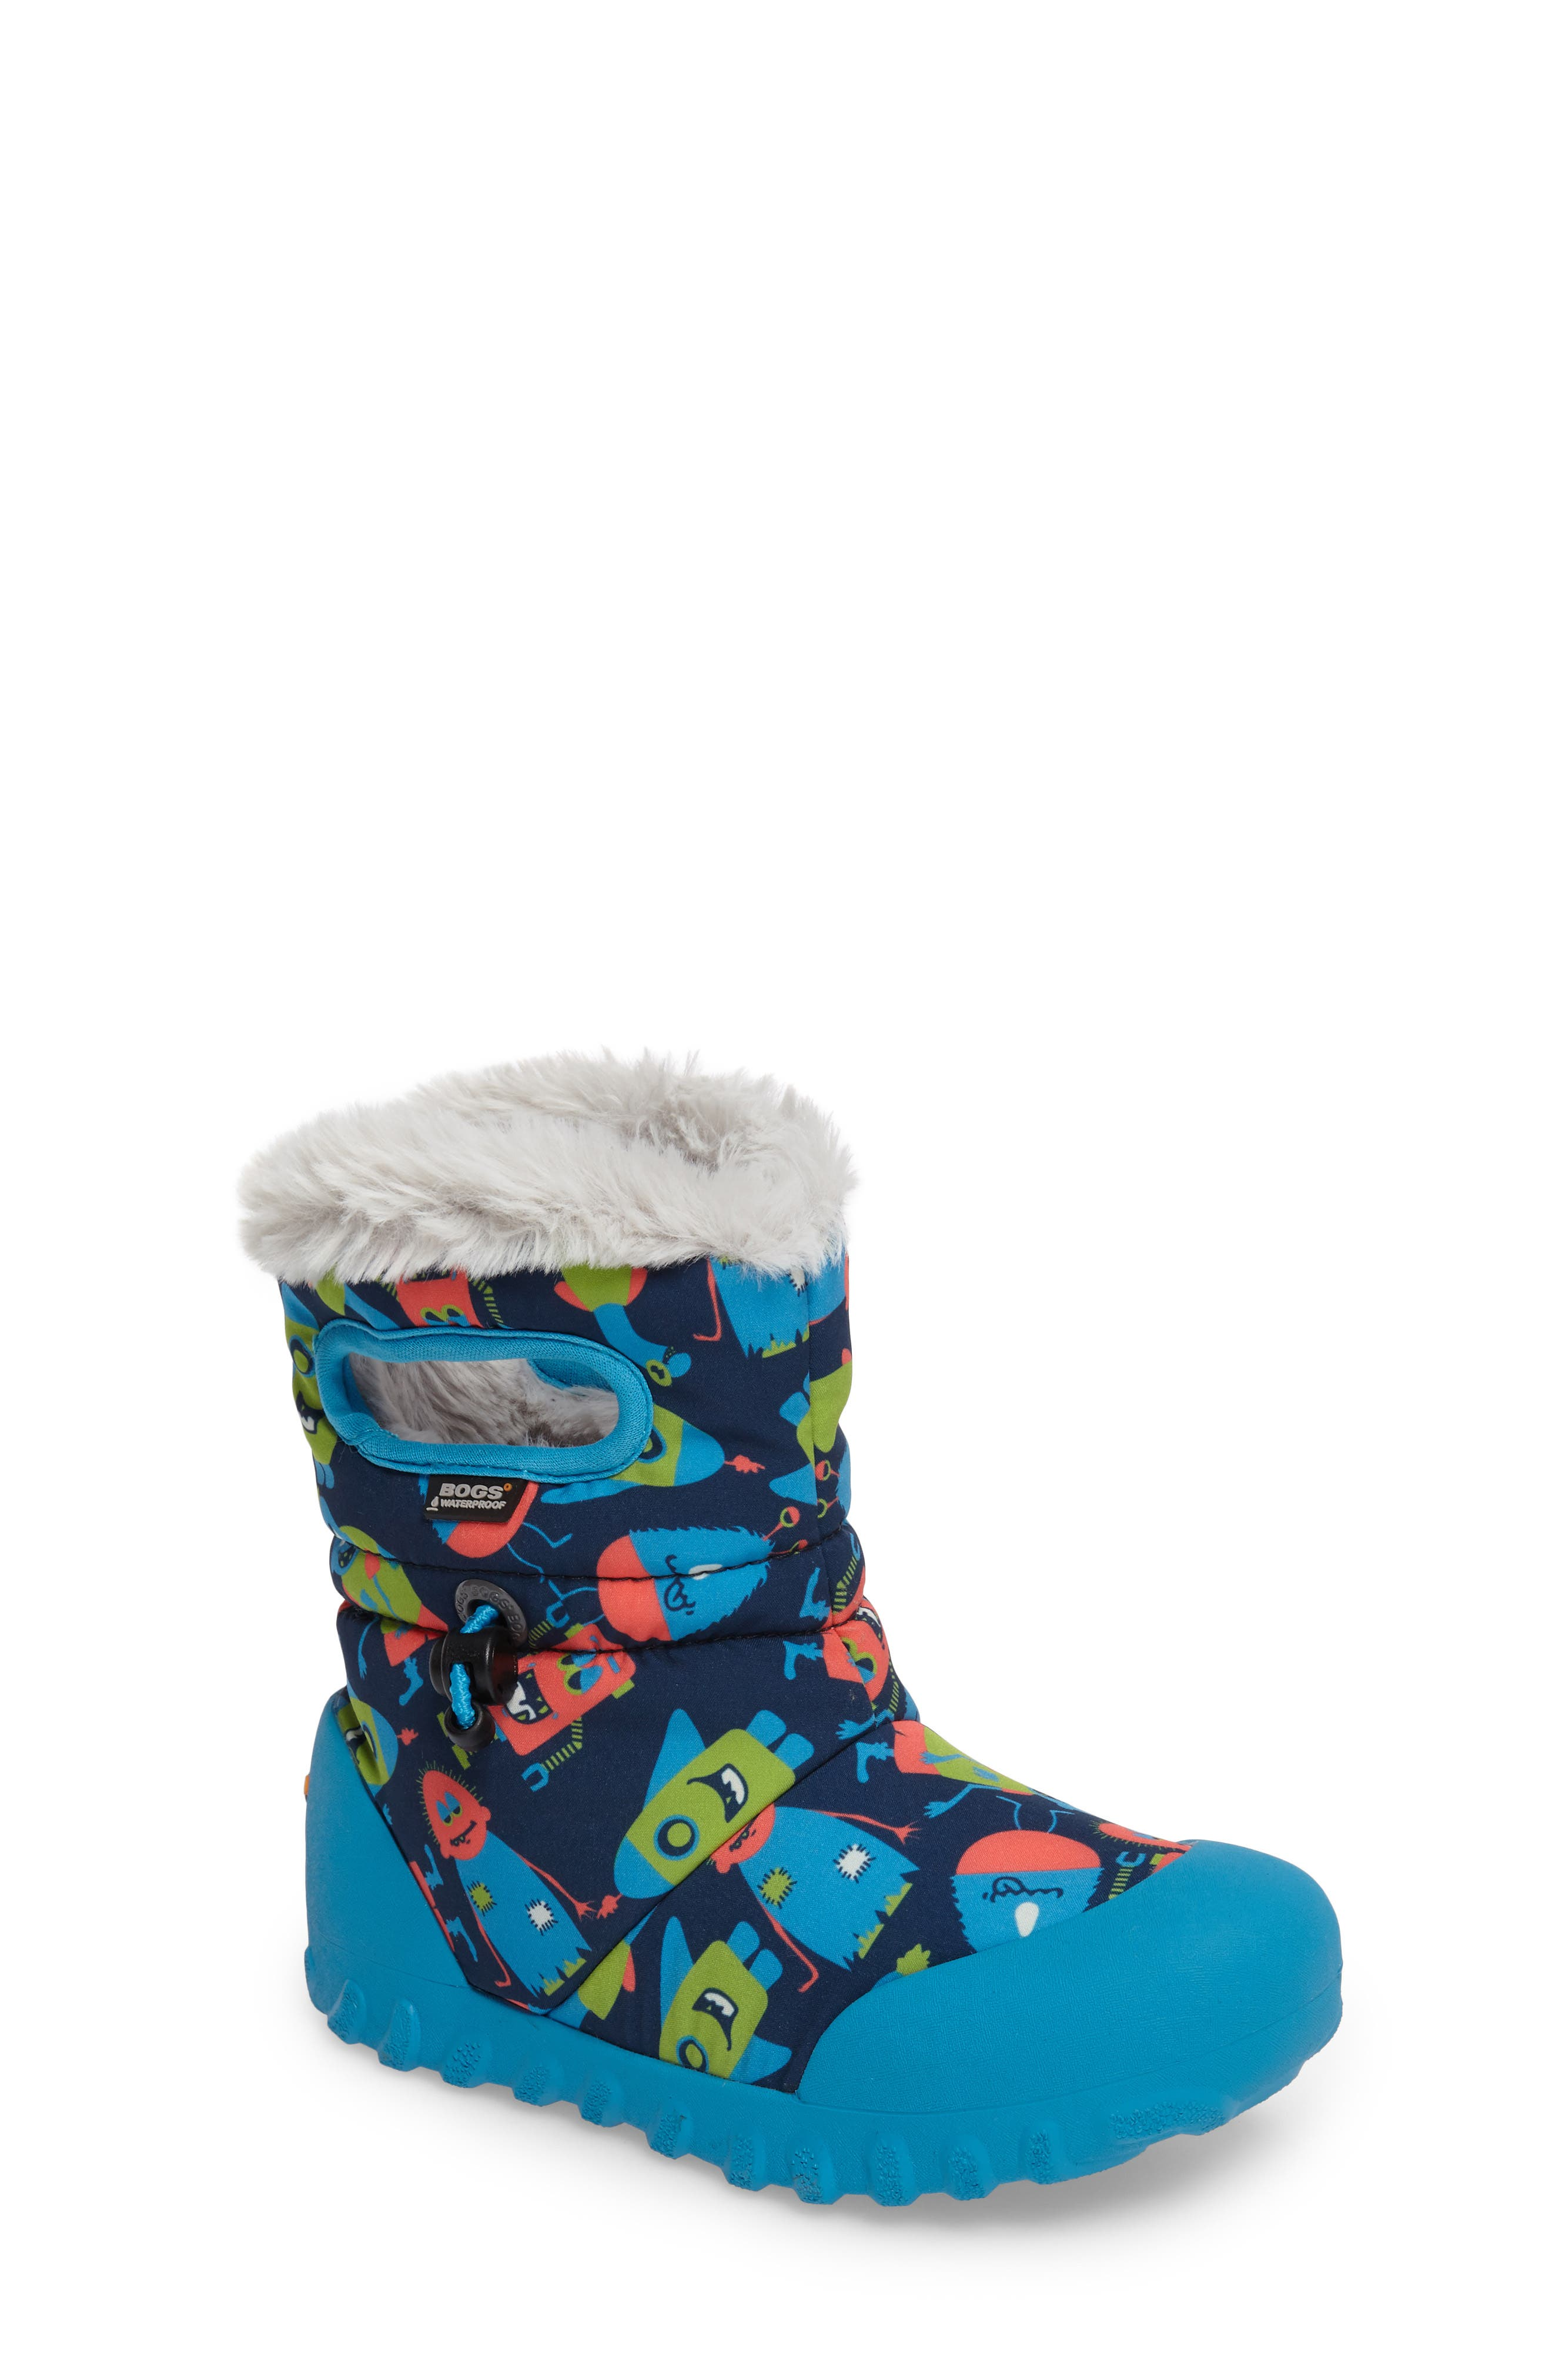 Bogs B-MOC Monsters Waterproof Insulated Faux Fur Boot (Toddler & Little Kid)